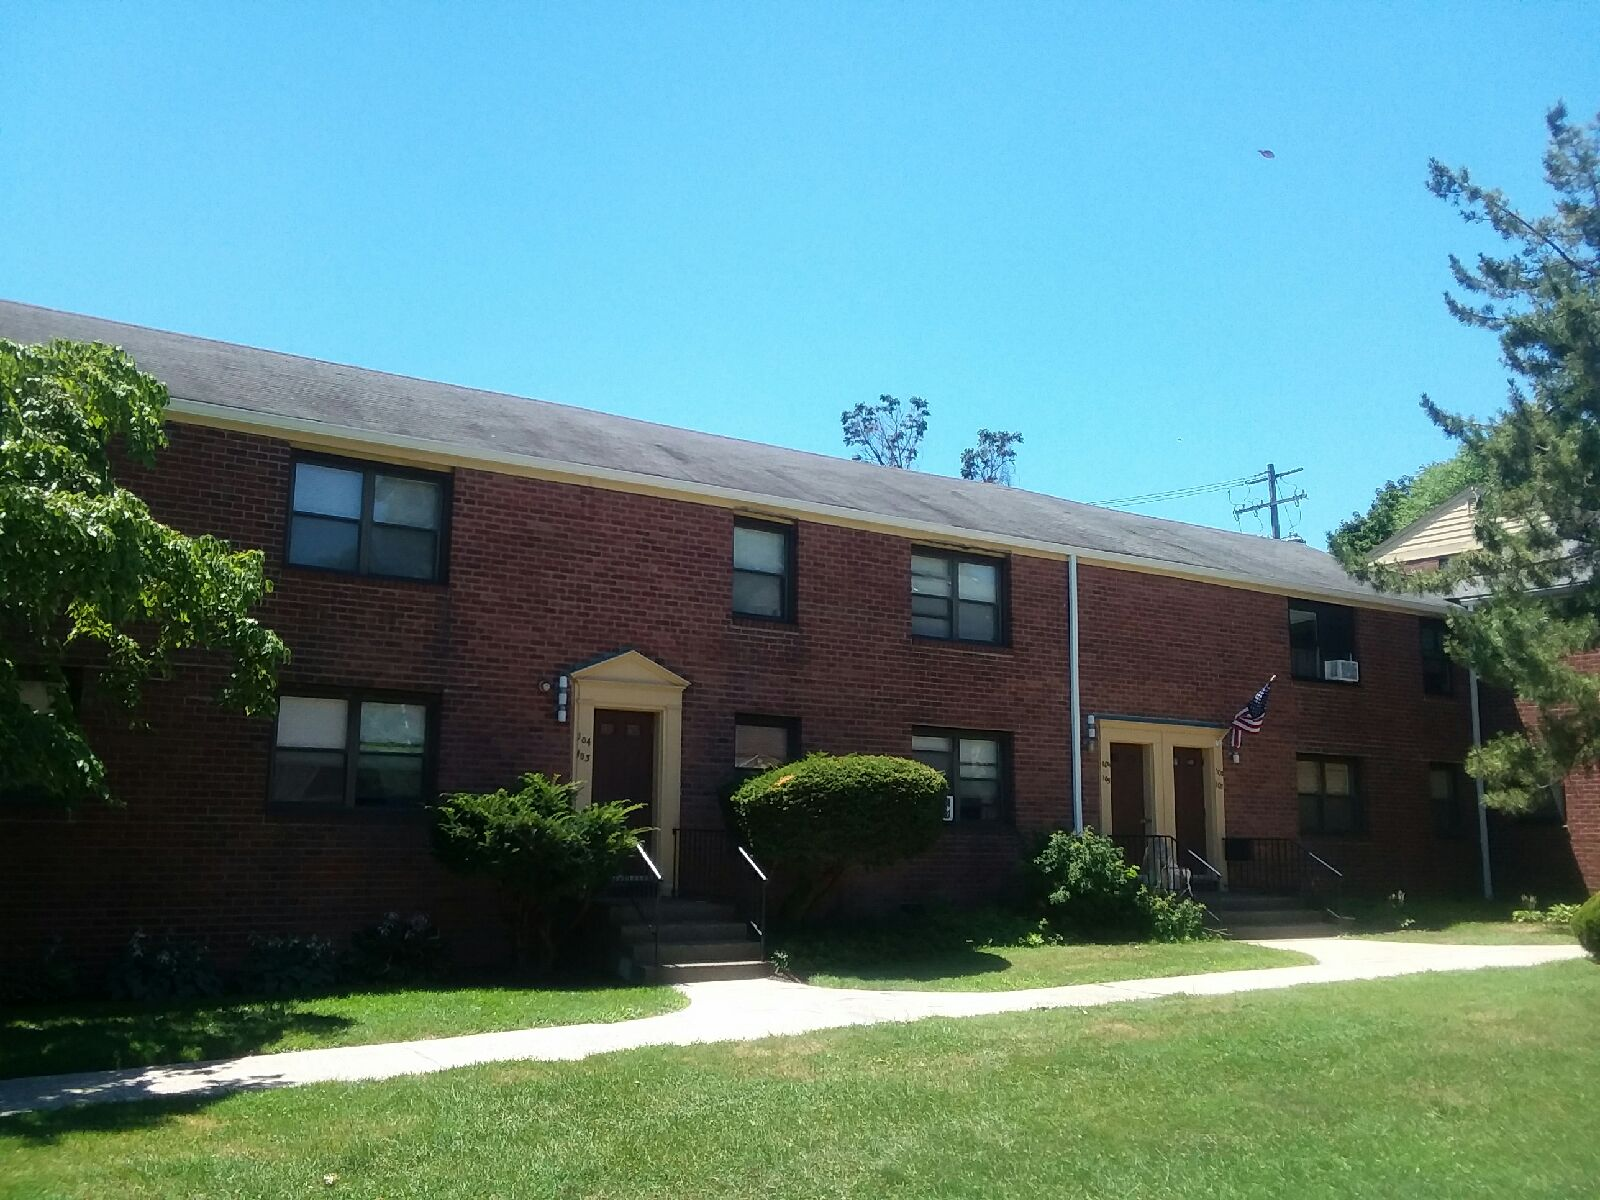 Gutter Installation in Nyack NY by Superior Seamless Gutters